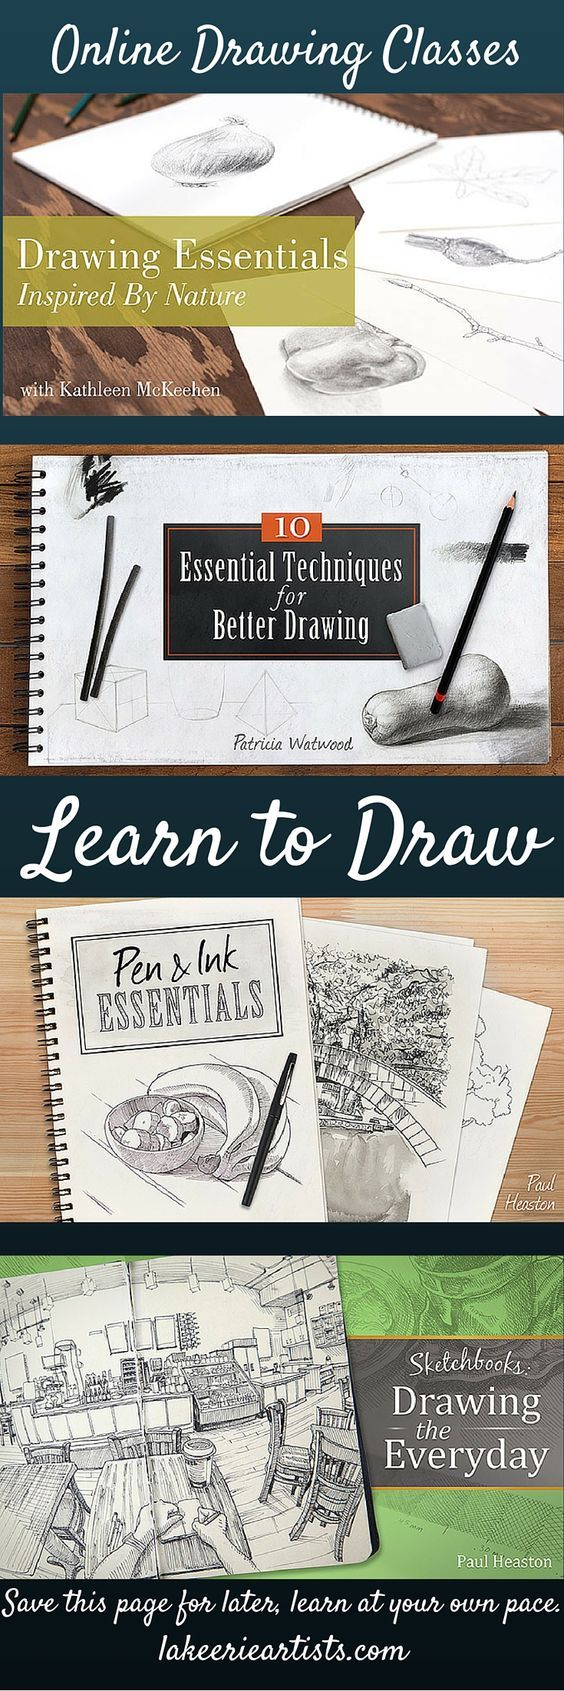 185 best drawing and painting images on pinterest for Learning to paint and draw